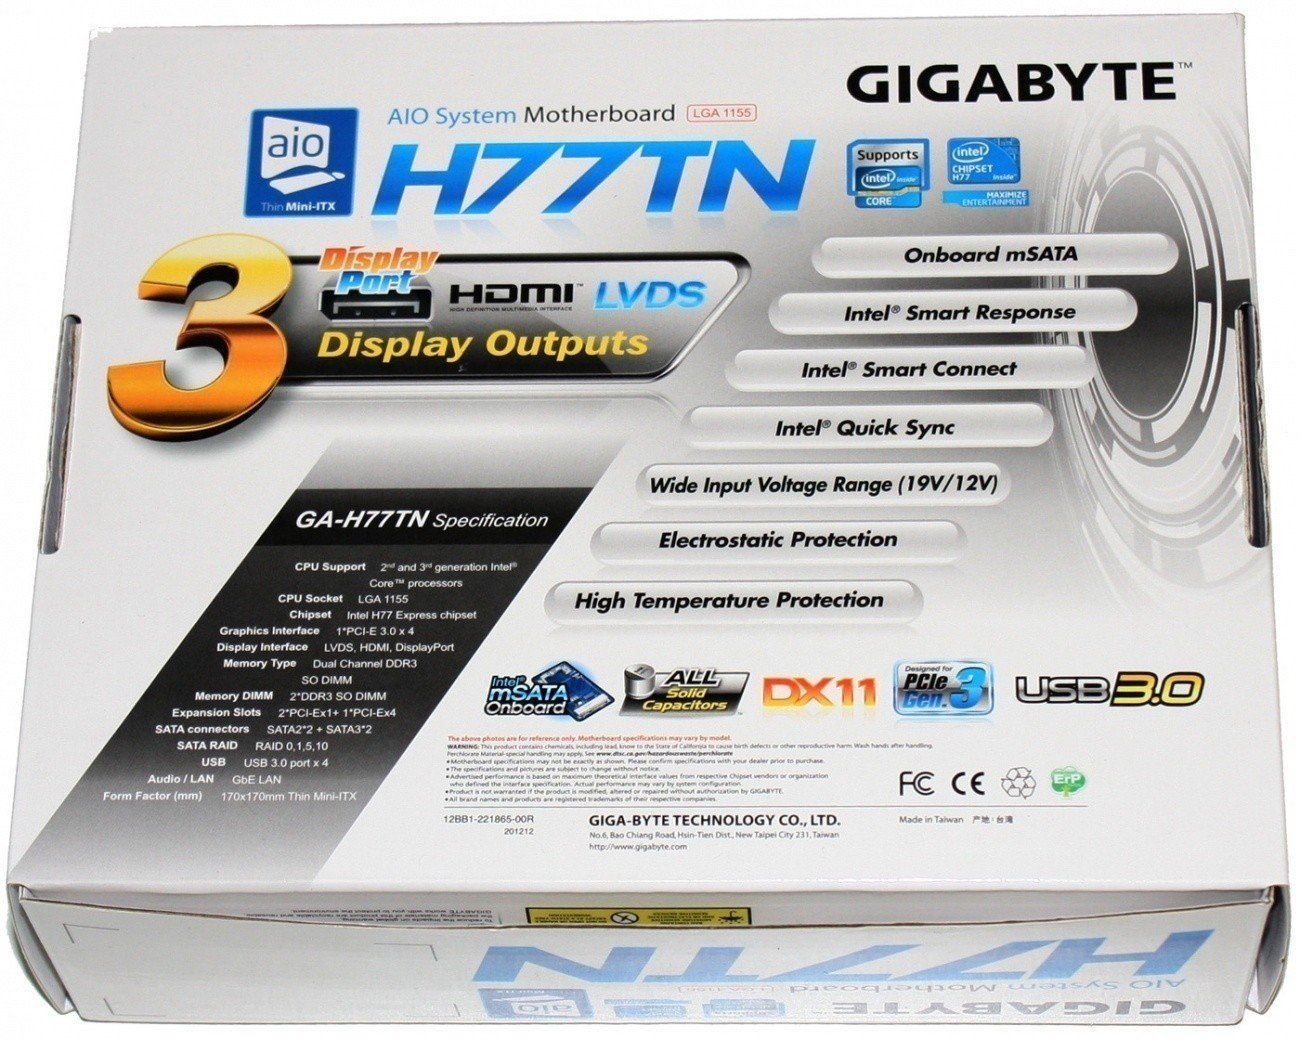 building_a_diy_all_in_one_pc_with_gigabyte_s_h77tn_thin_mini_itx_motherboard